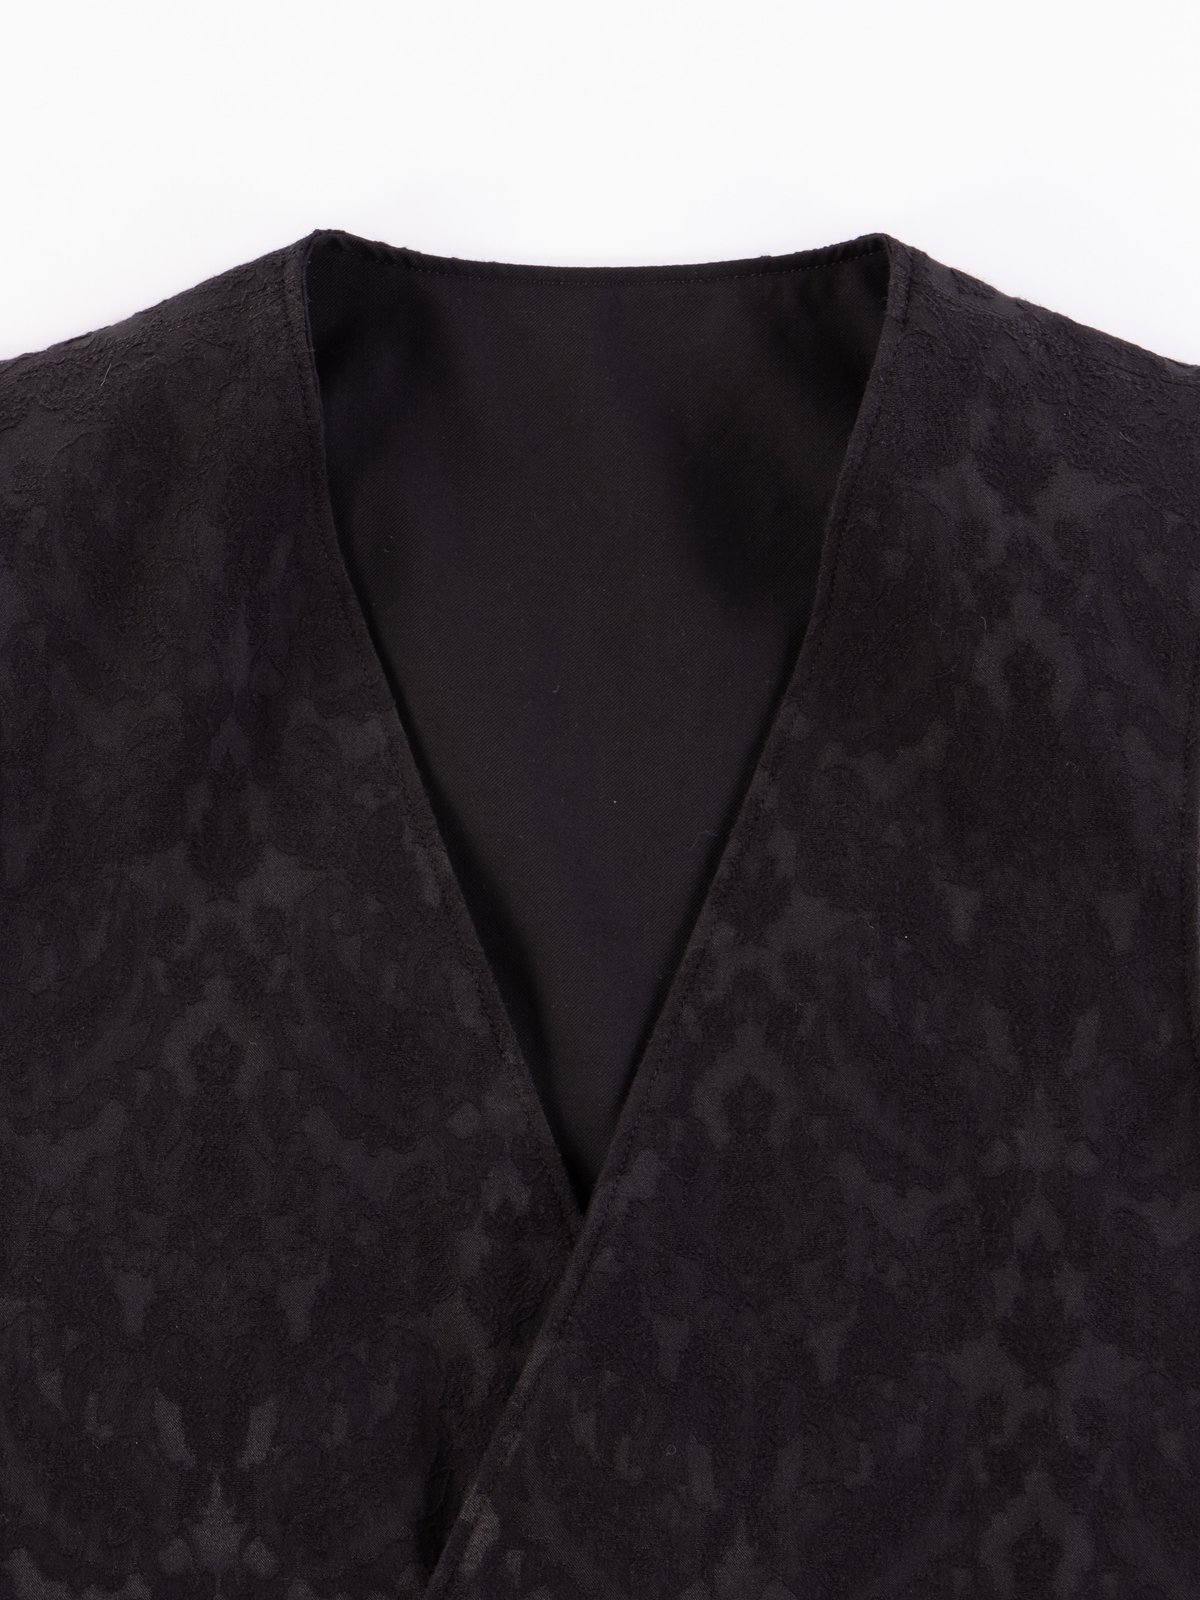 Black Worsted Wool Gabardine Reversible Vest - Image 8